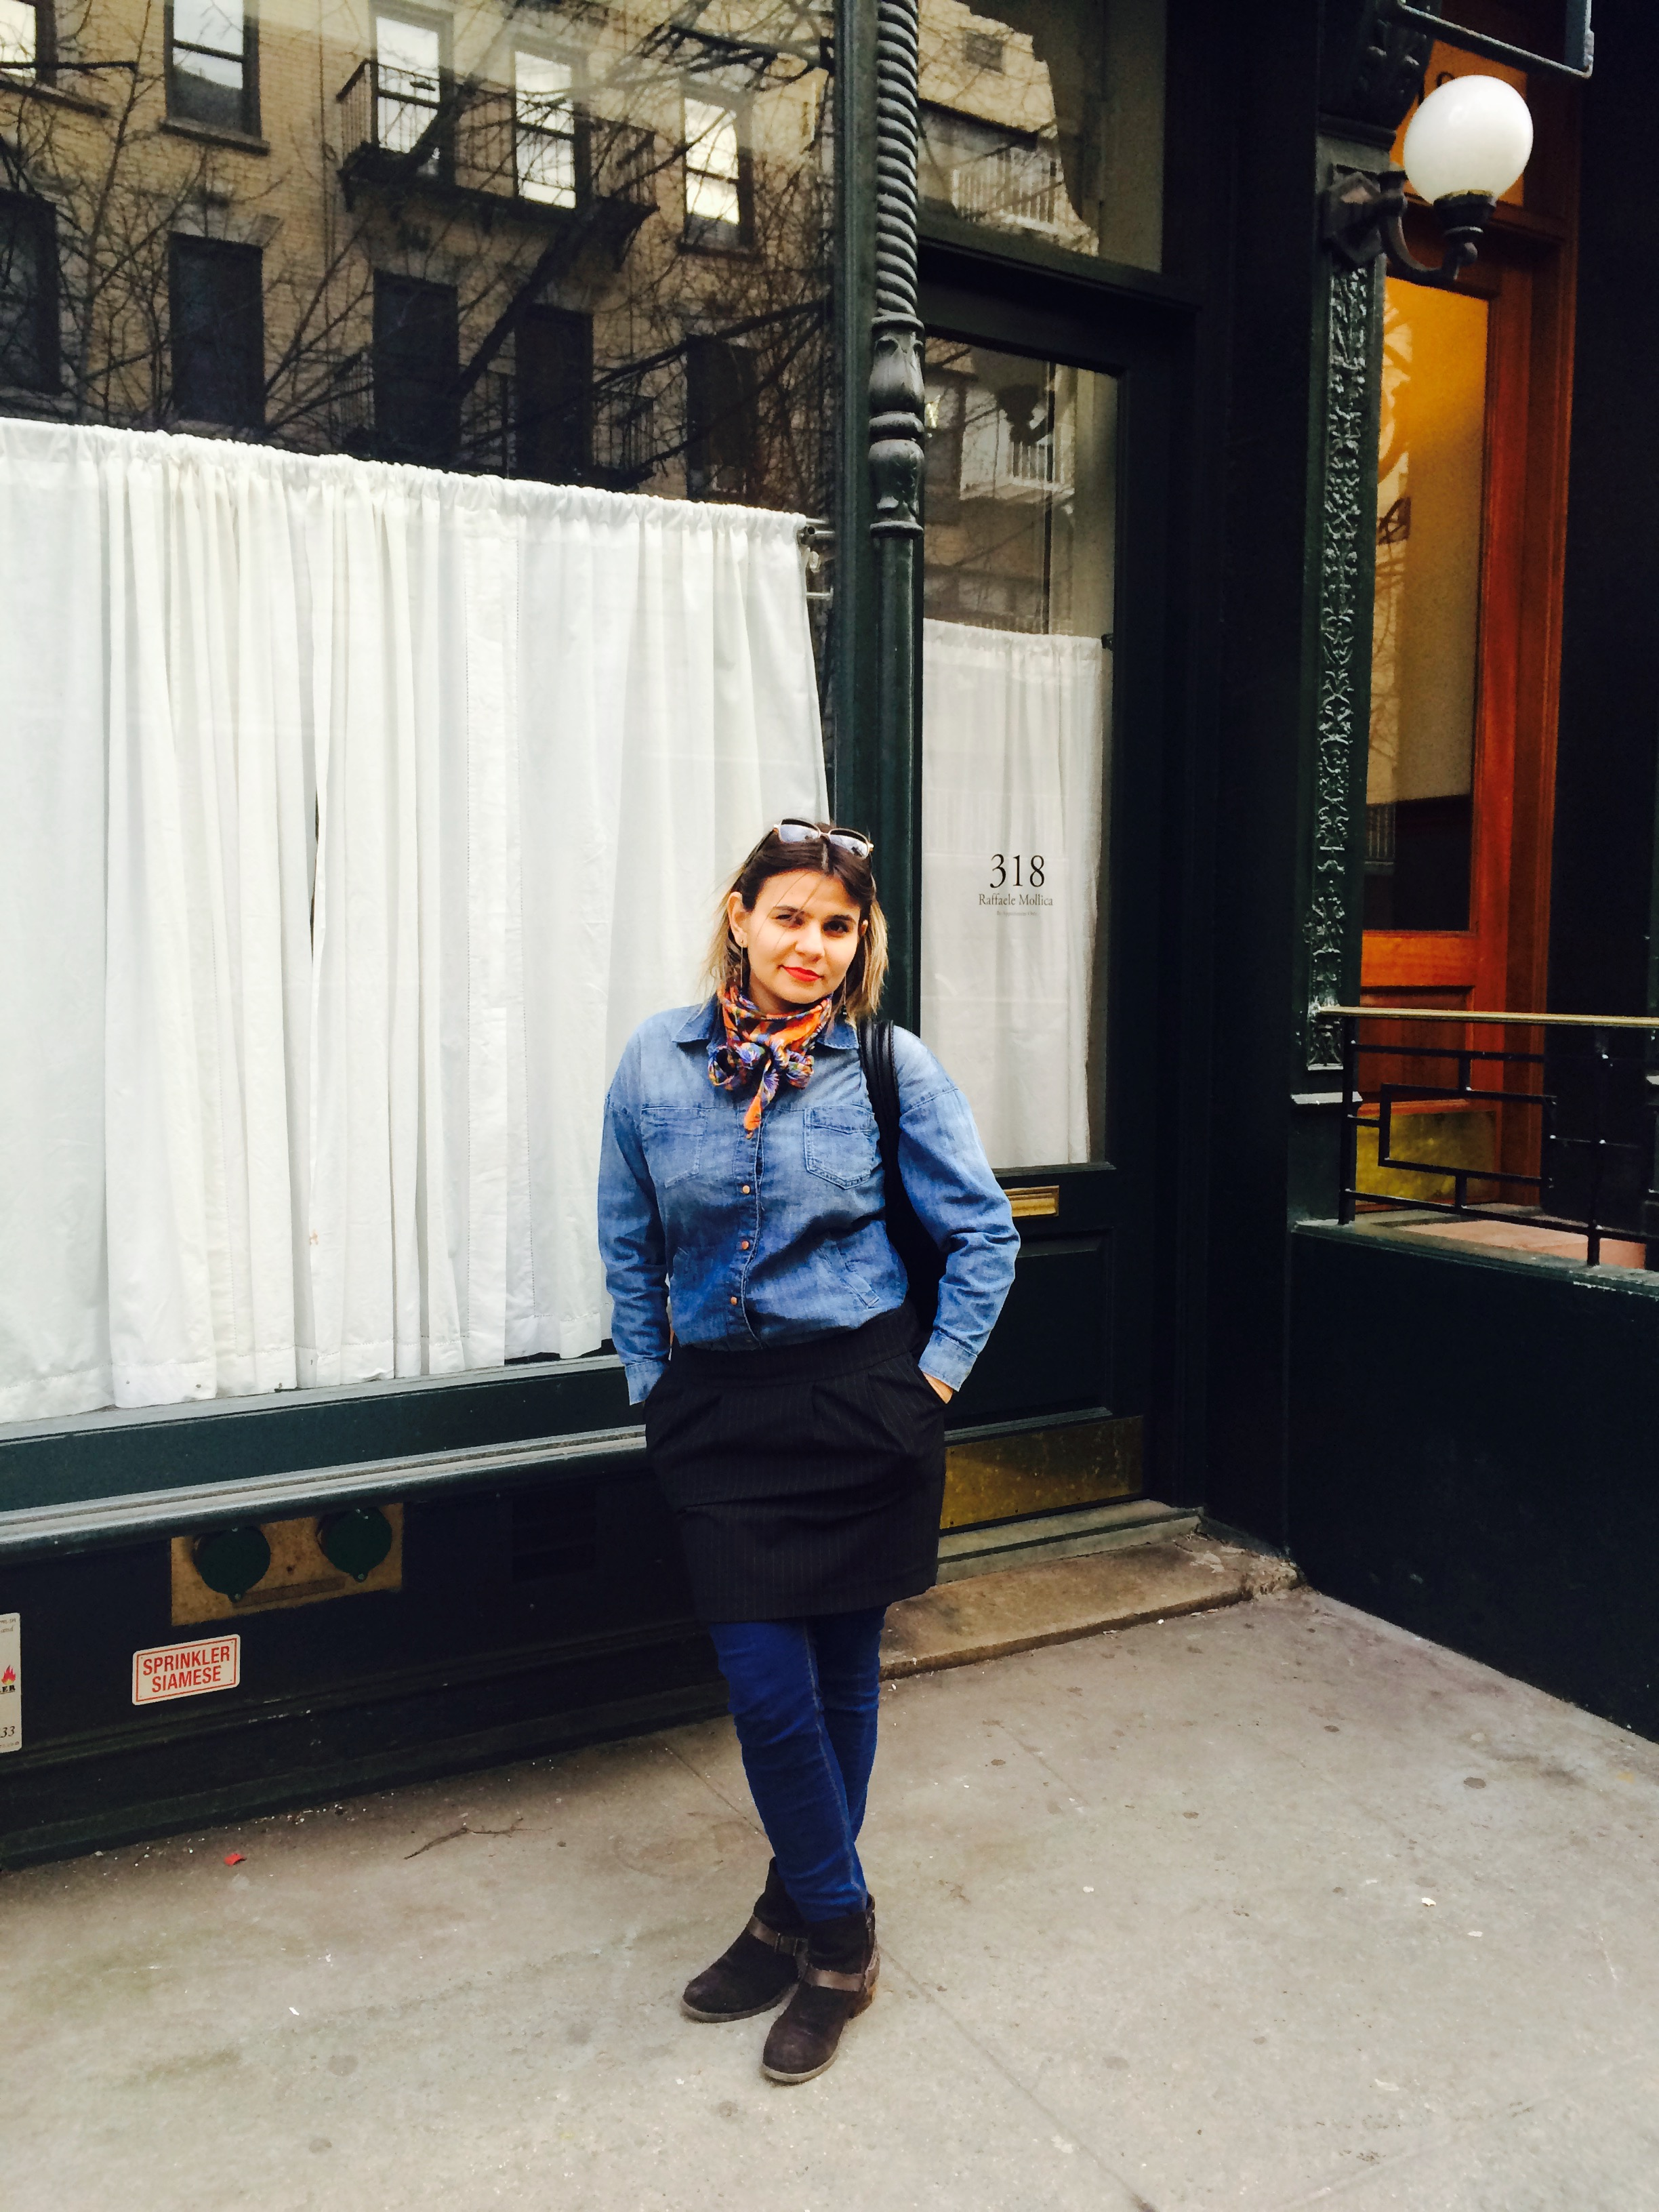 skirts_over_pants_alley_girl_fashion_style_tech_blogger_new_york2